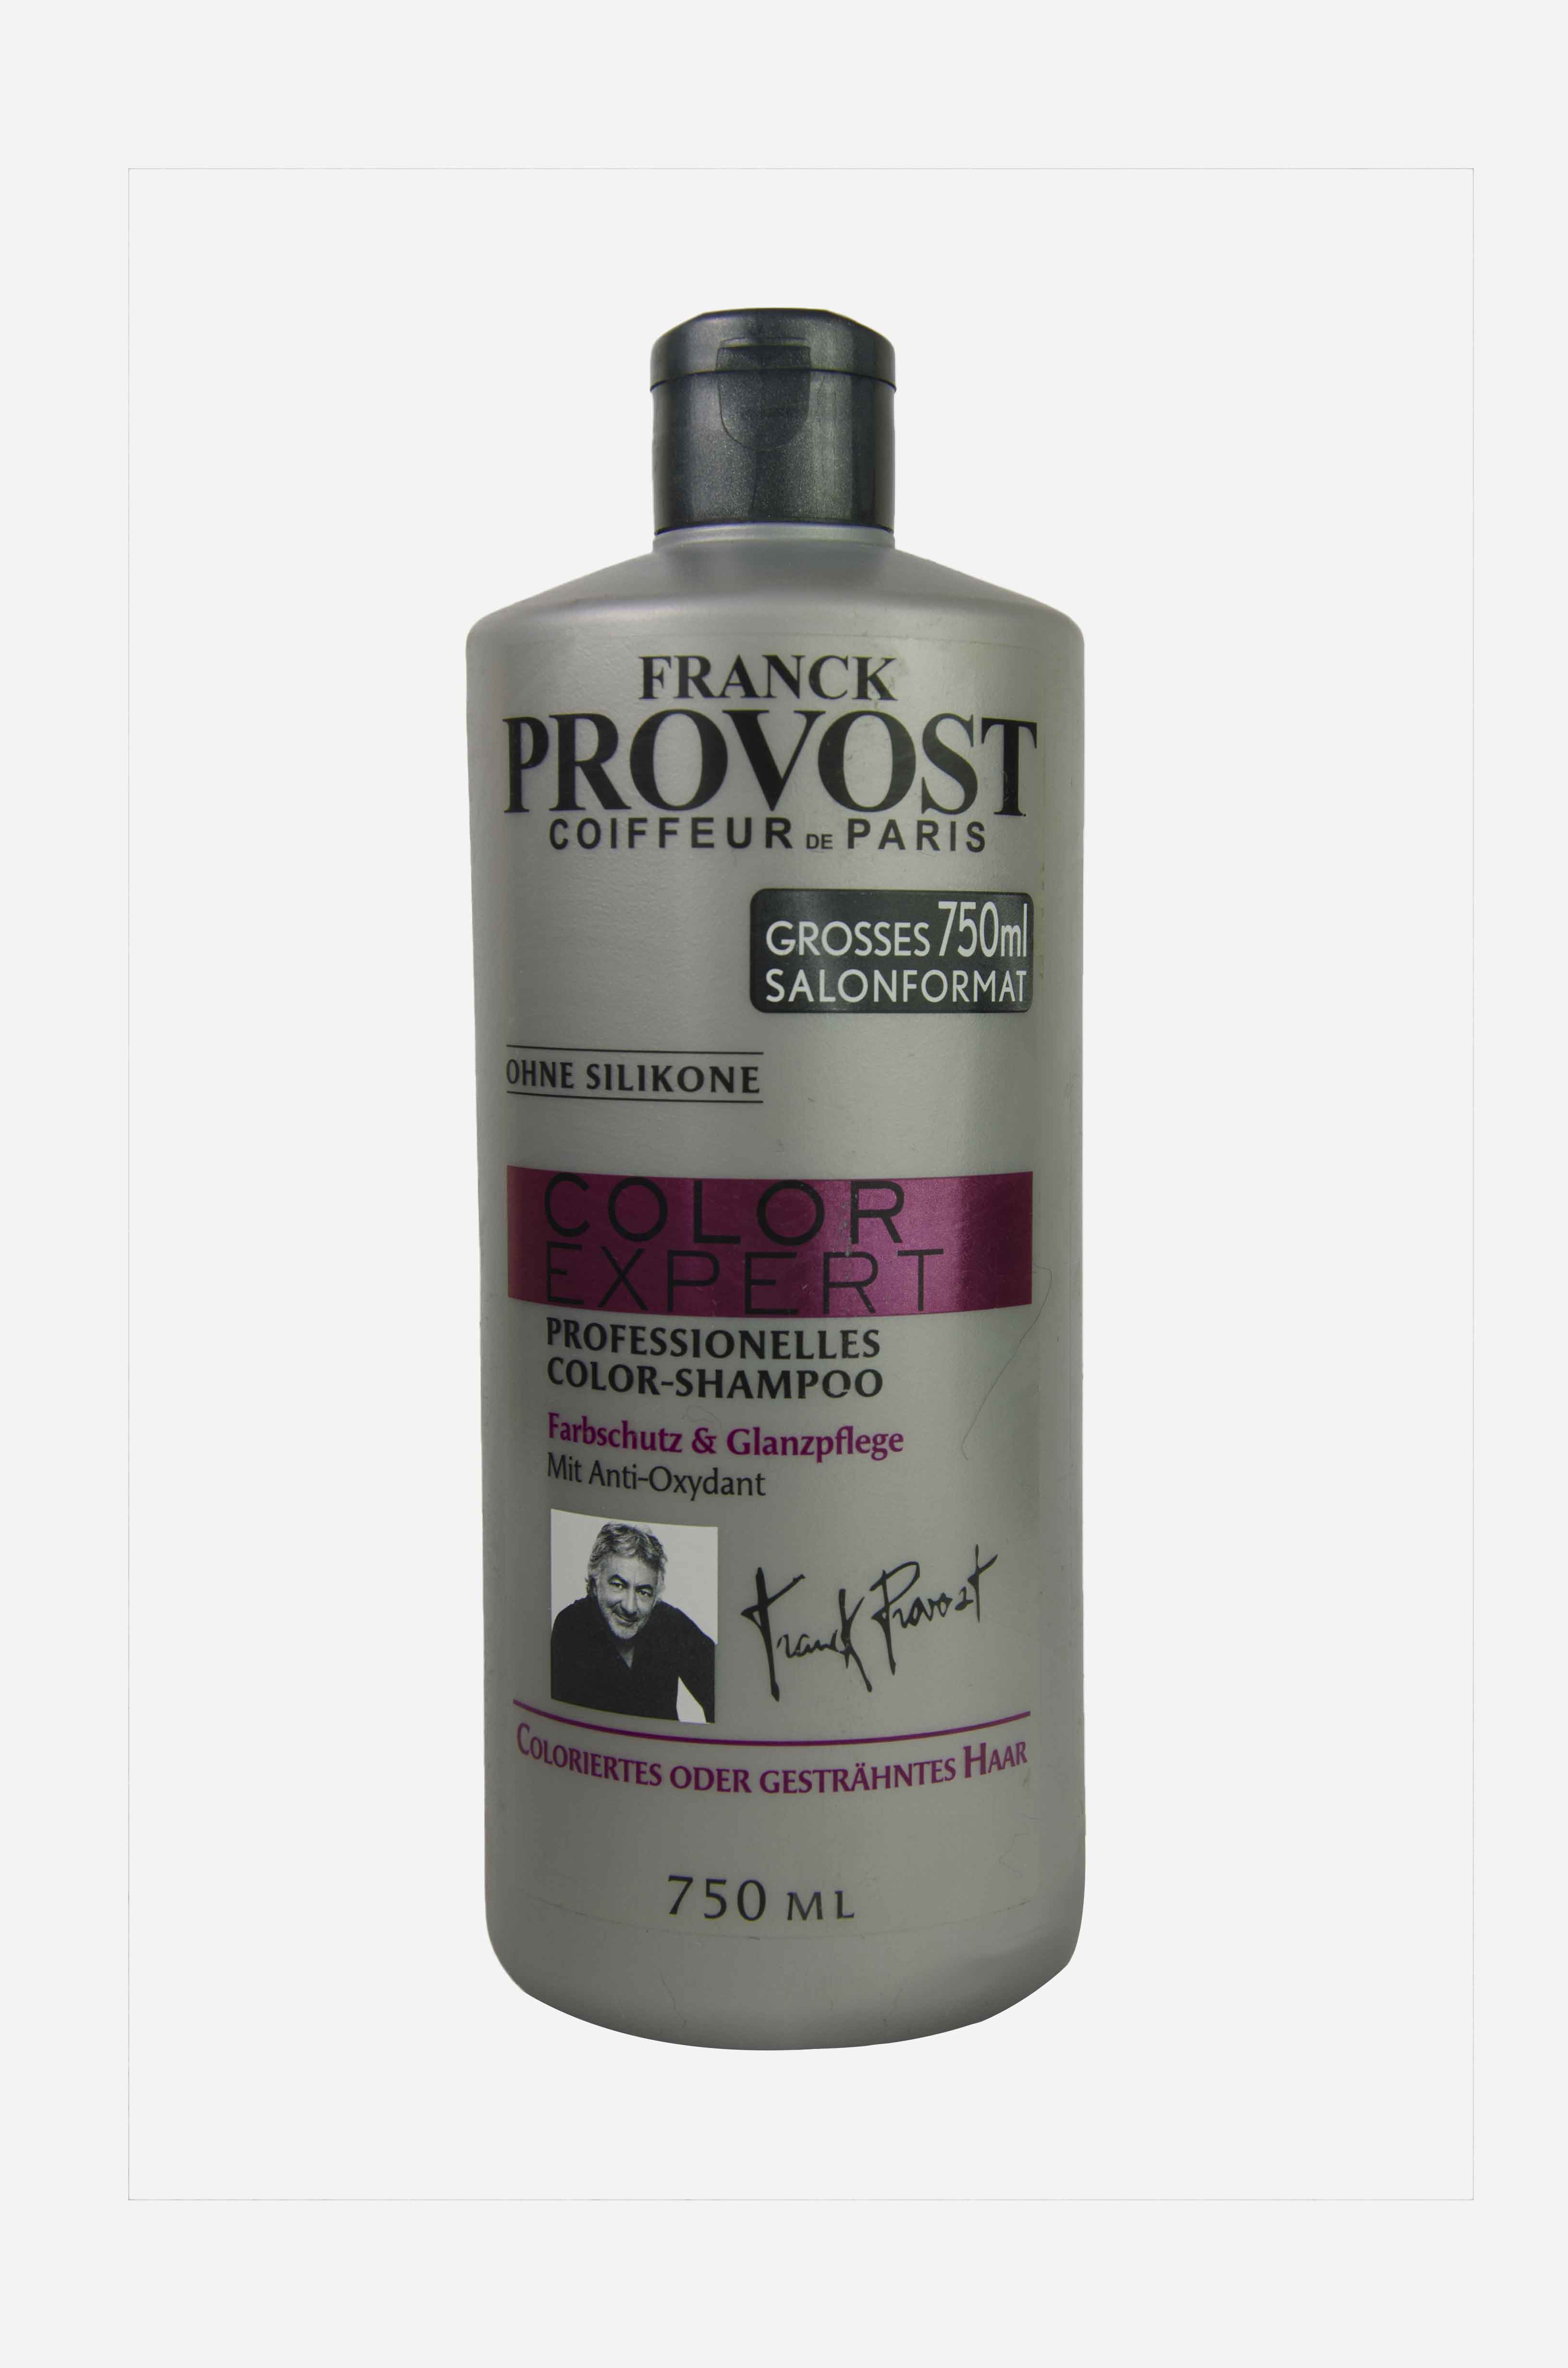 Tooth Pain Relief >> Franck Provost Color Expert Shampoo 750ml @Yazein.com Egypt